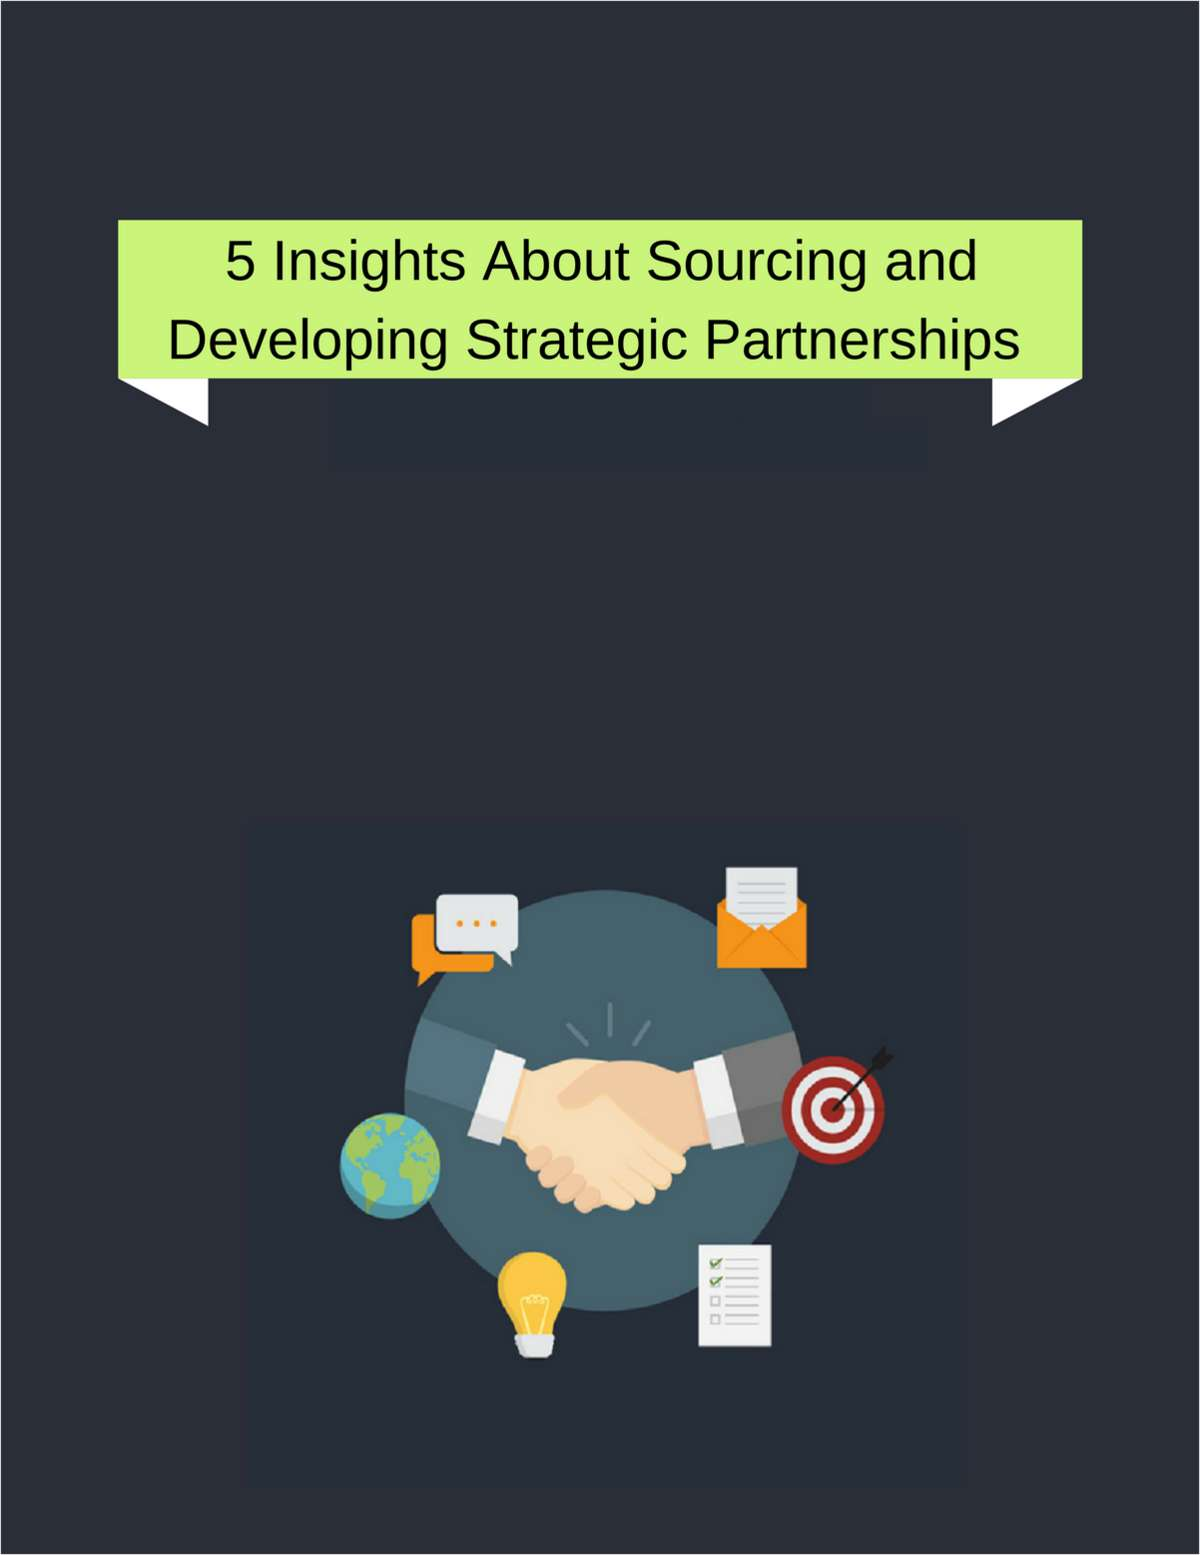 5 Insights About Sourcing and Developing Strategic Partnerships